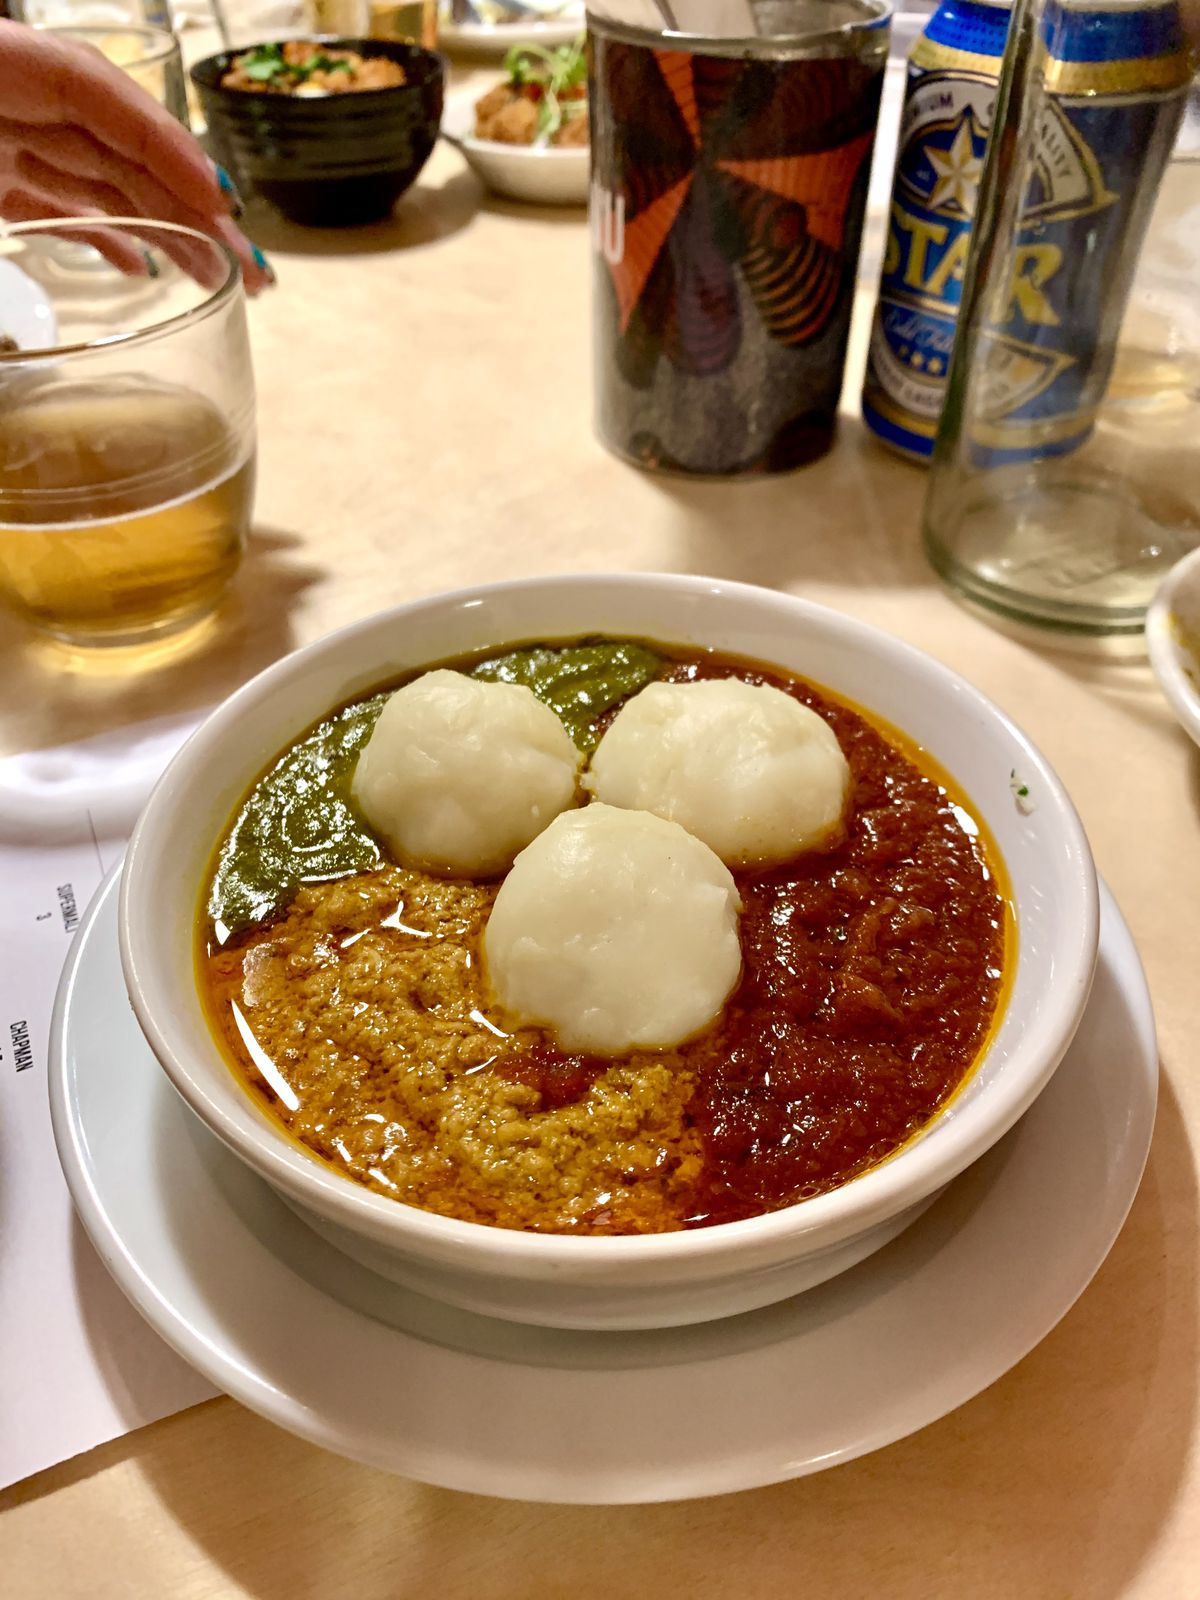 Fufu and egusi in a bowl on a brightly lit table